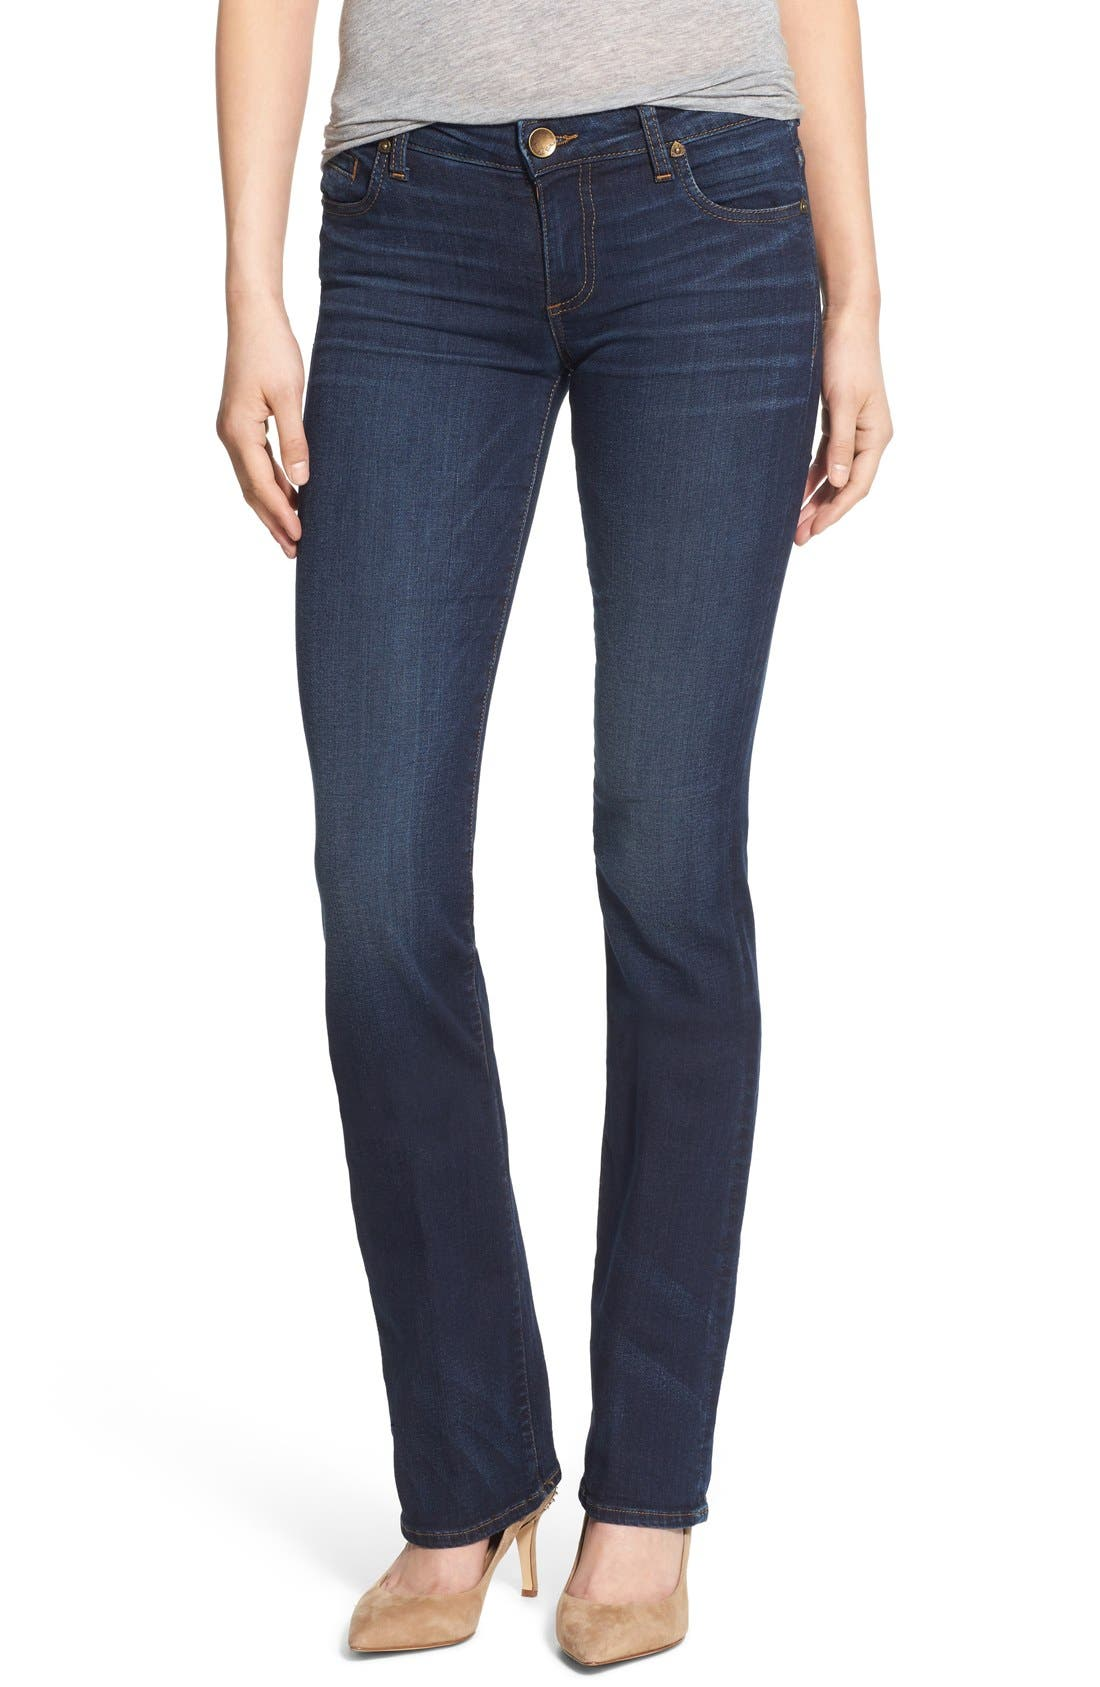 'Natalie' Stretch Bootleg Jeans,                         Main,                         color, 401